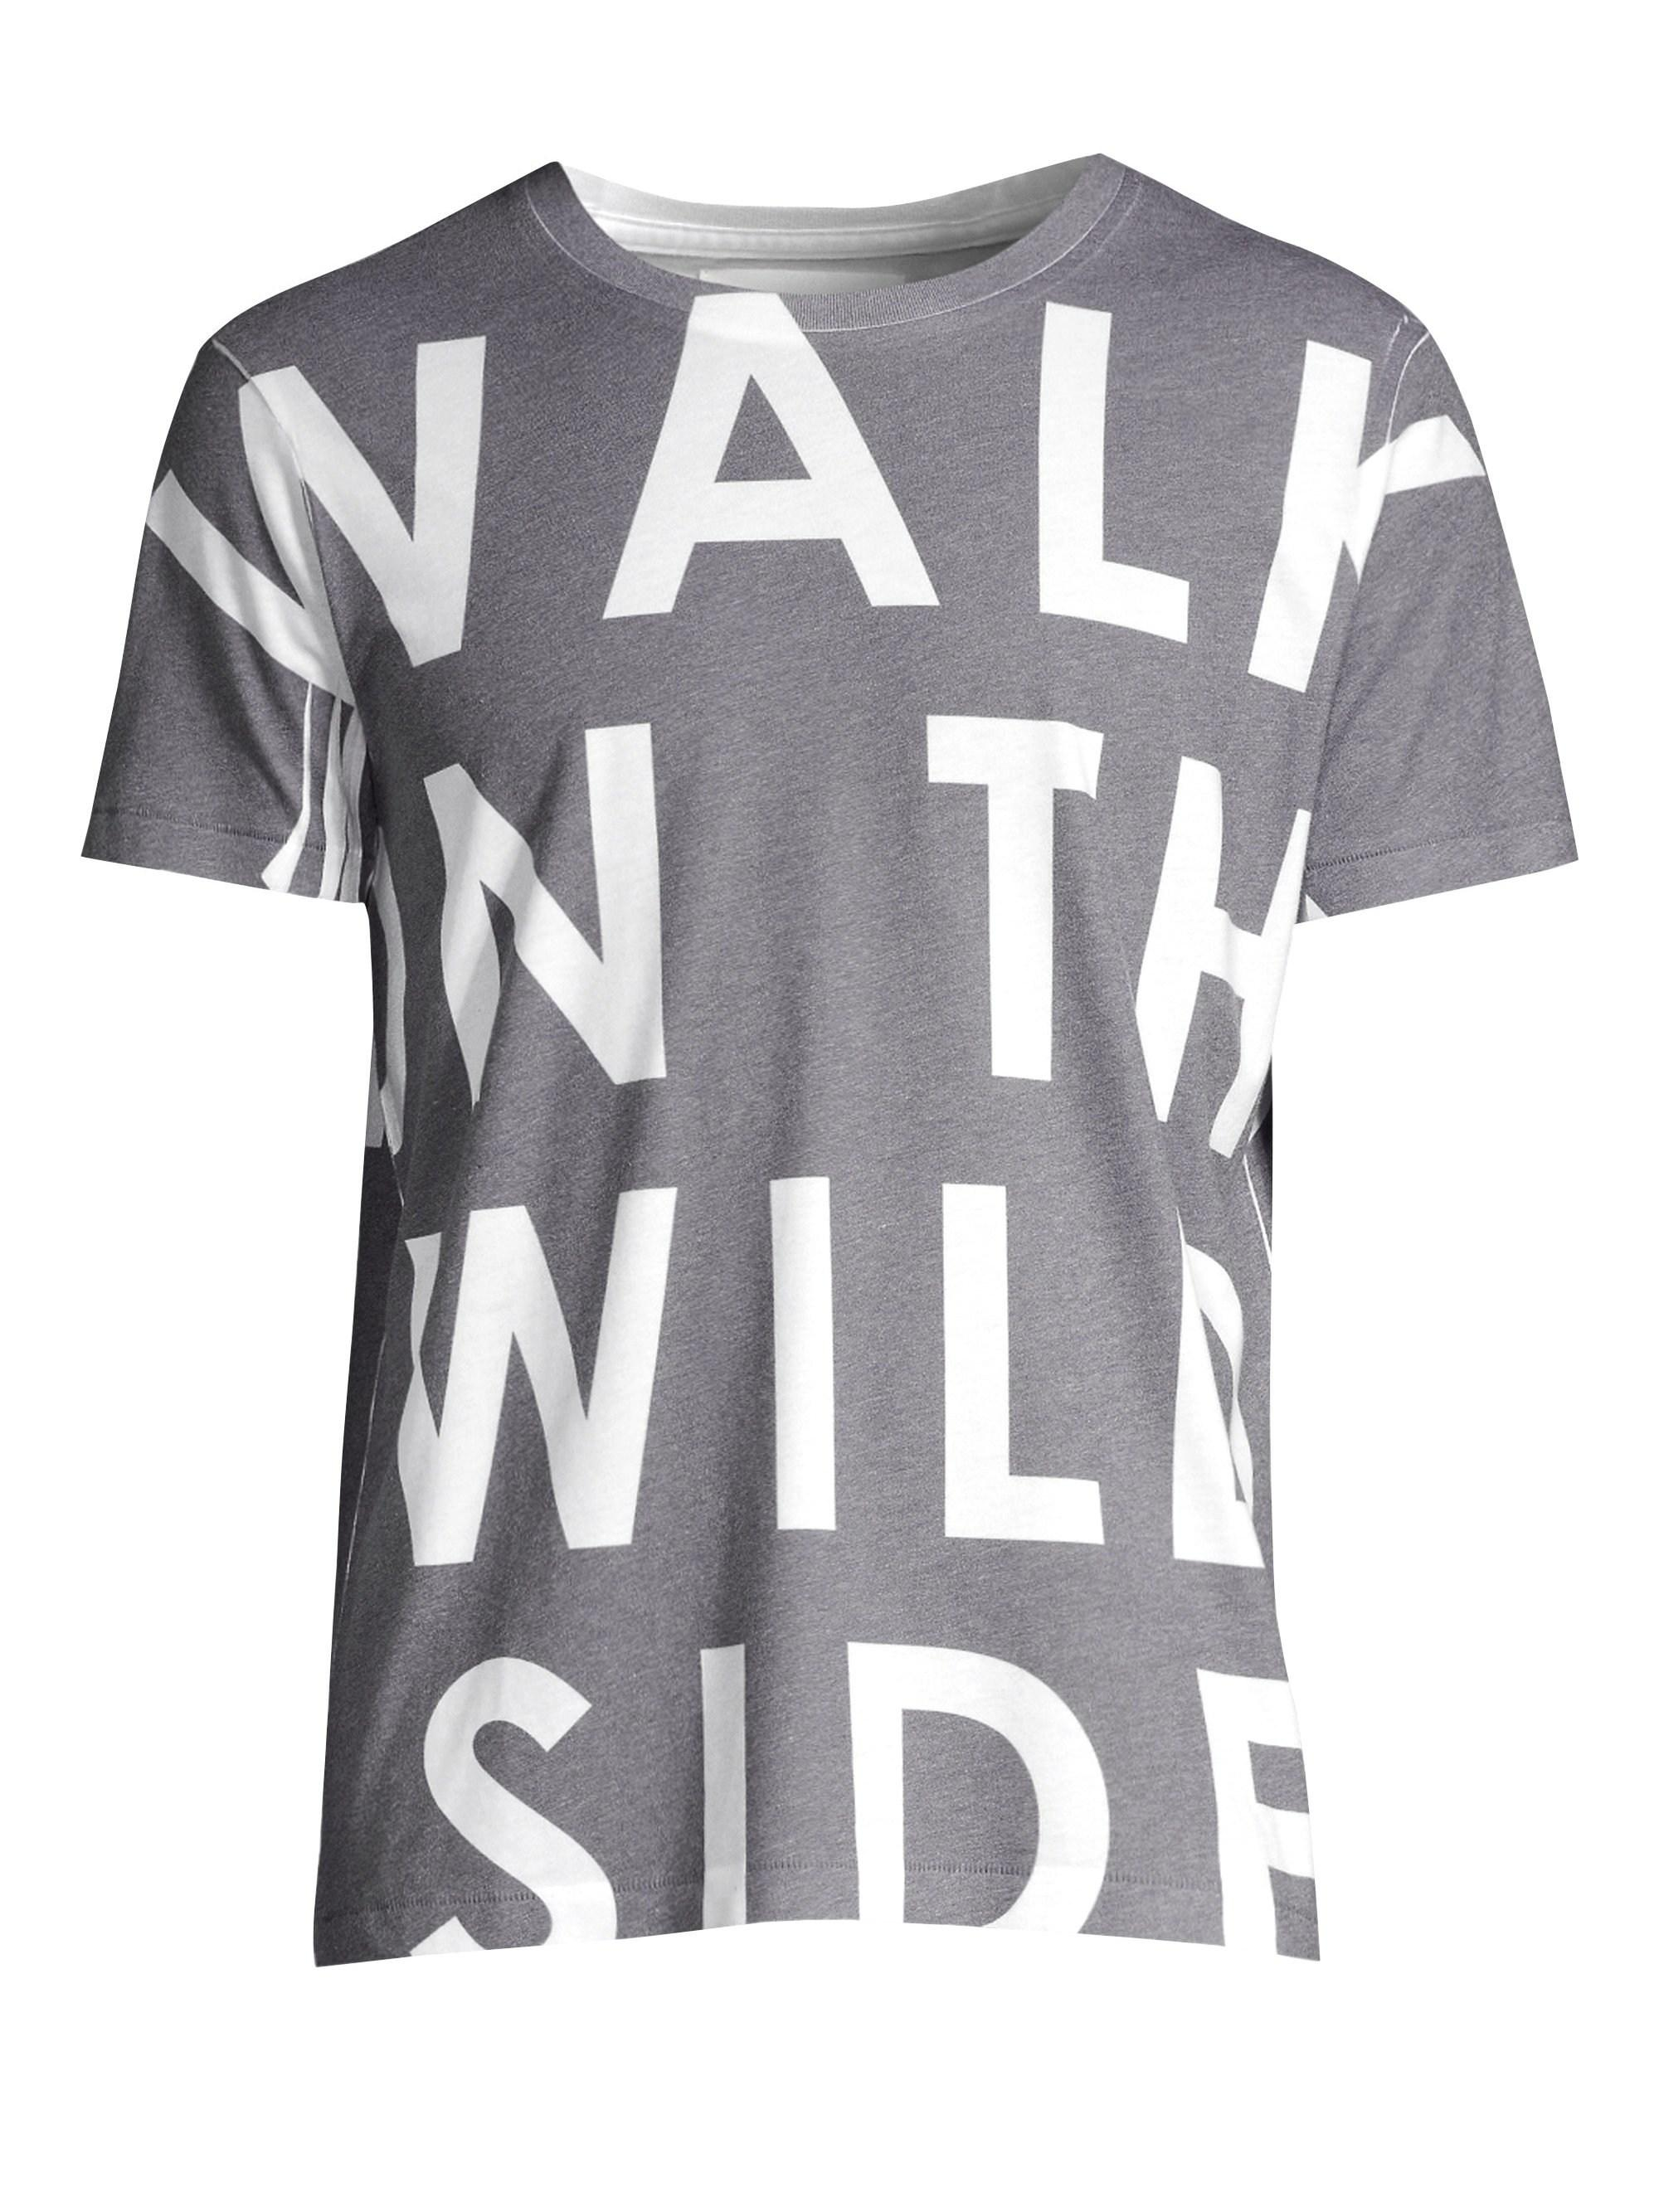 ca369c7a Lyst - Sol Angeles Wild Side Crew T-shirt for Men - Save 65%